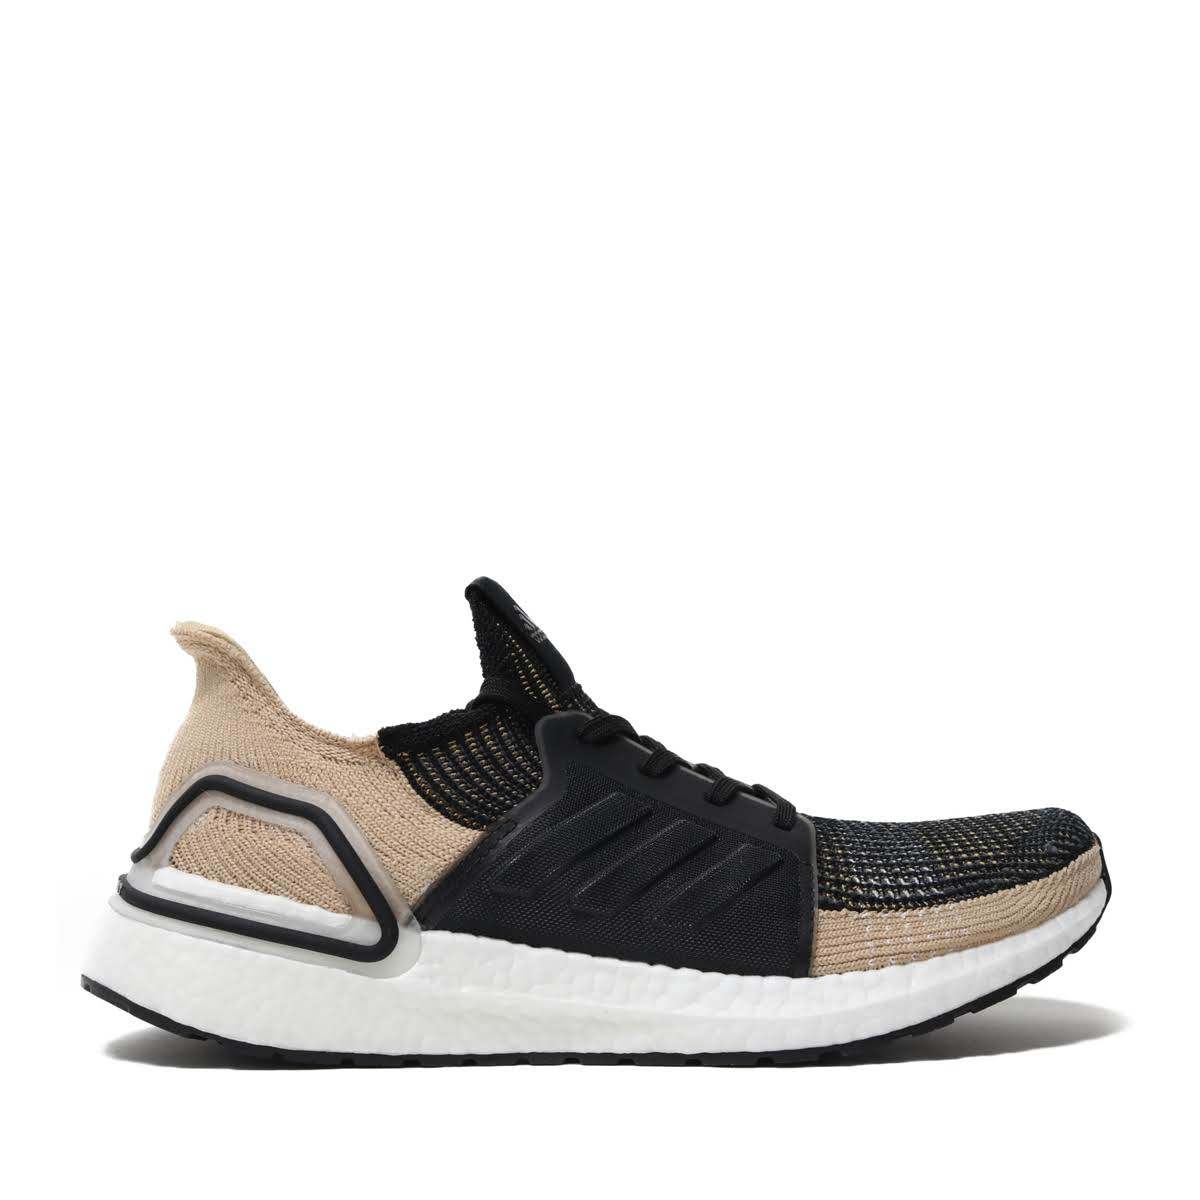 innovative design c01b2 5ee65 Kinetics  adidas UltraBOOST 19 (CORE BLACK RAW SAND GREY SIX ...